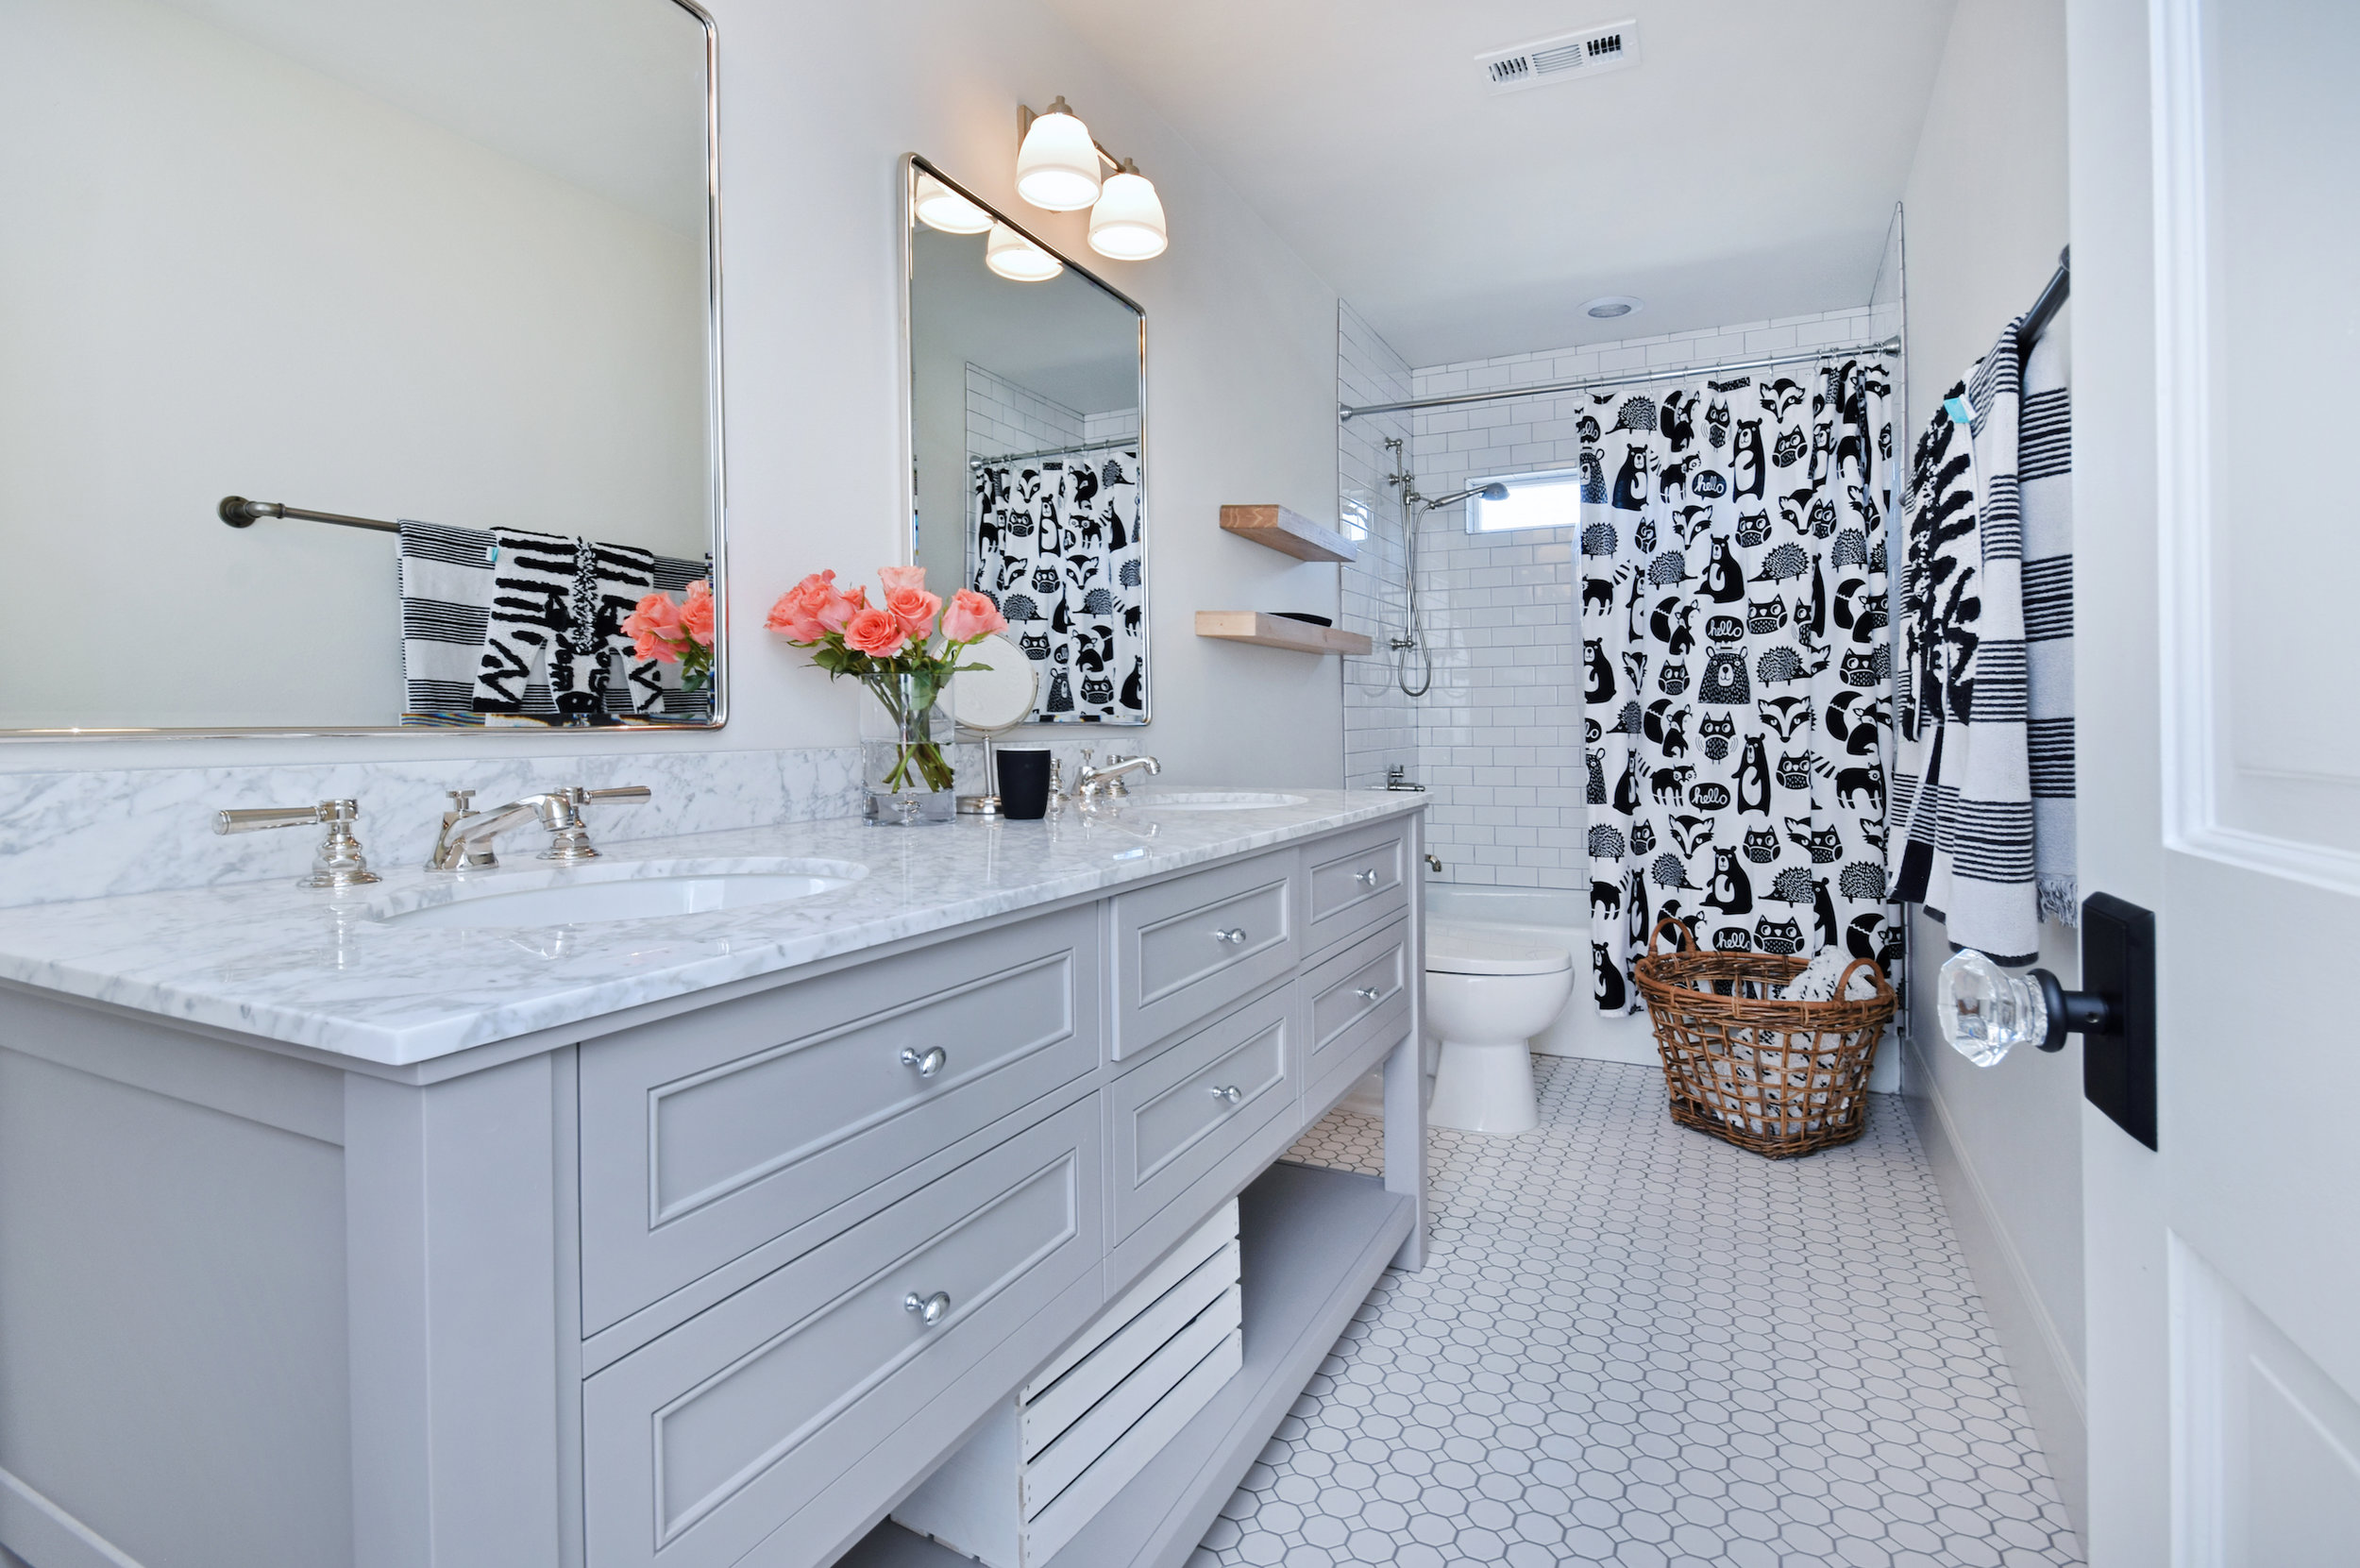 026 Bathroom 560 Cold Canyon Road For Sale Lease The Malibu Life Team Luxury Real Estate.jpg